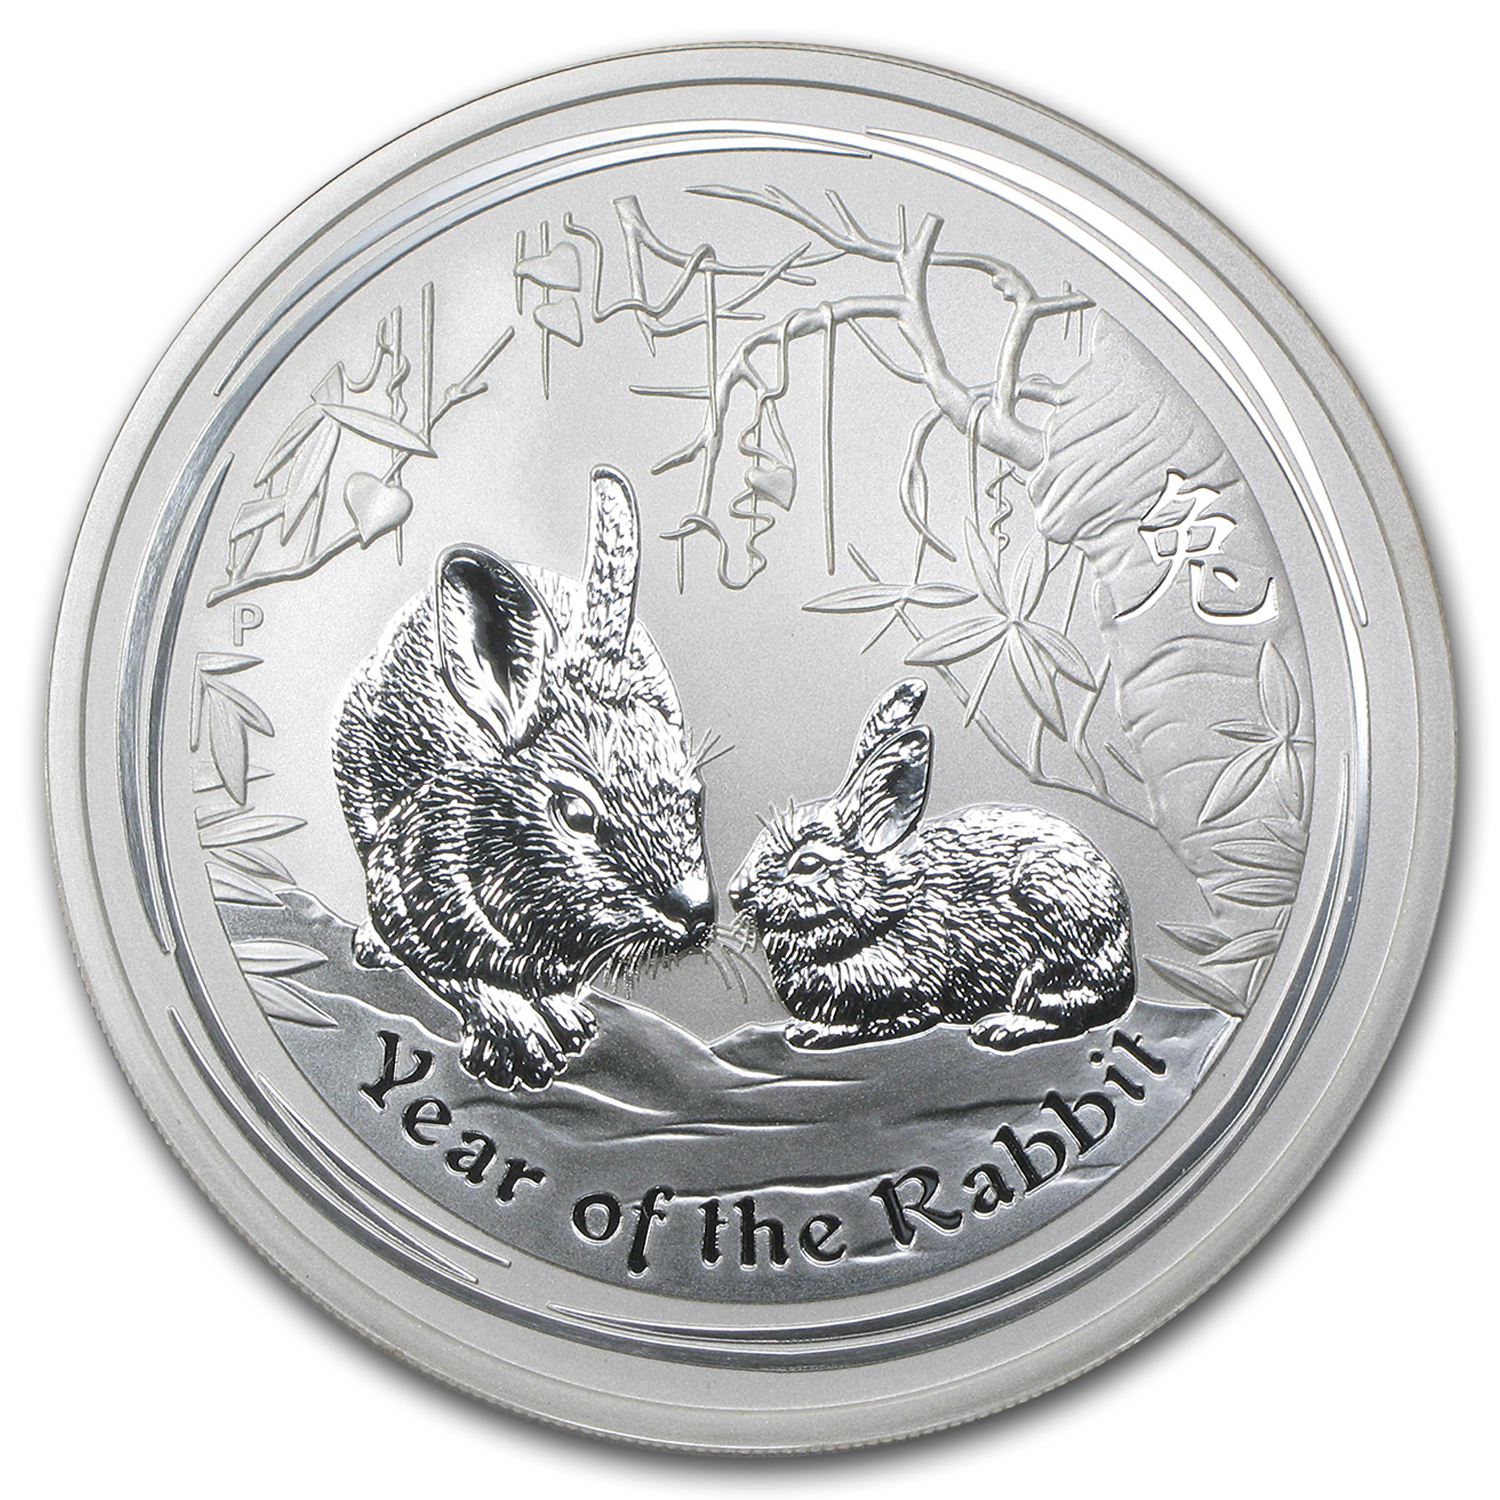 2011 5 oz Silver Australian Year of the Rabbit Coin (Series II)